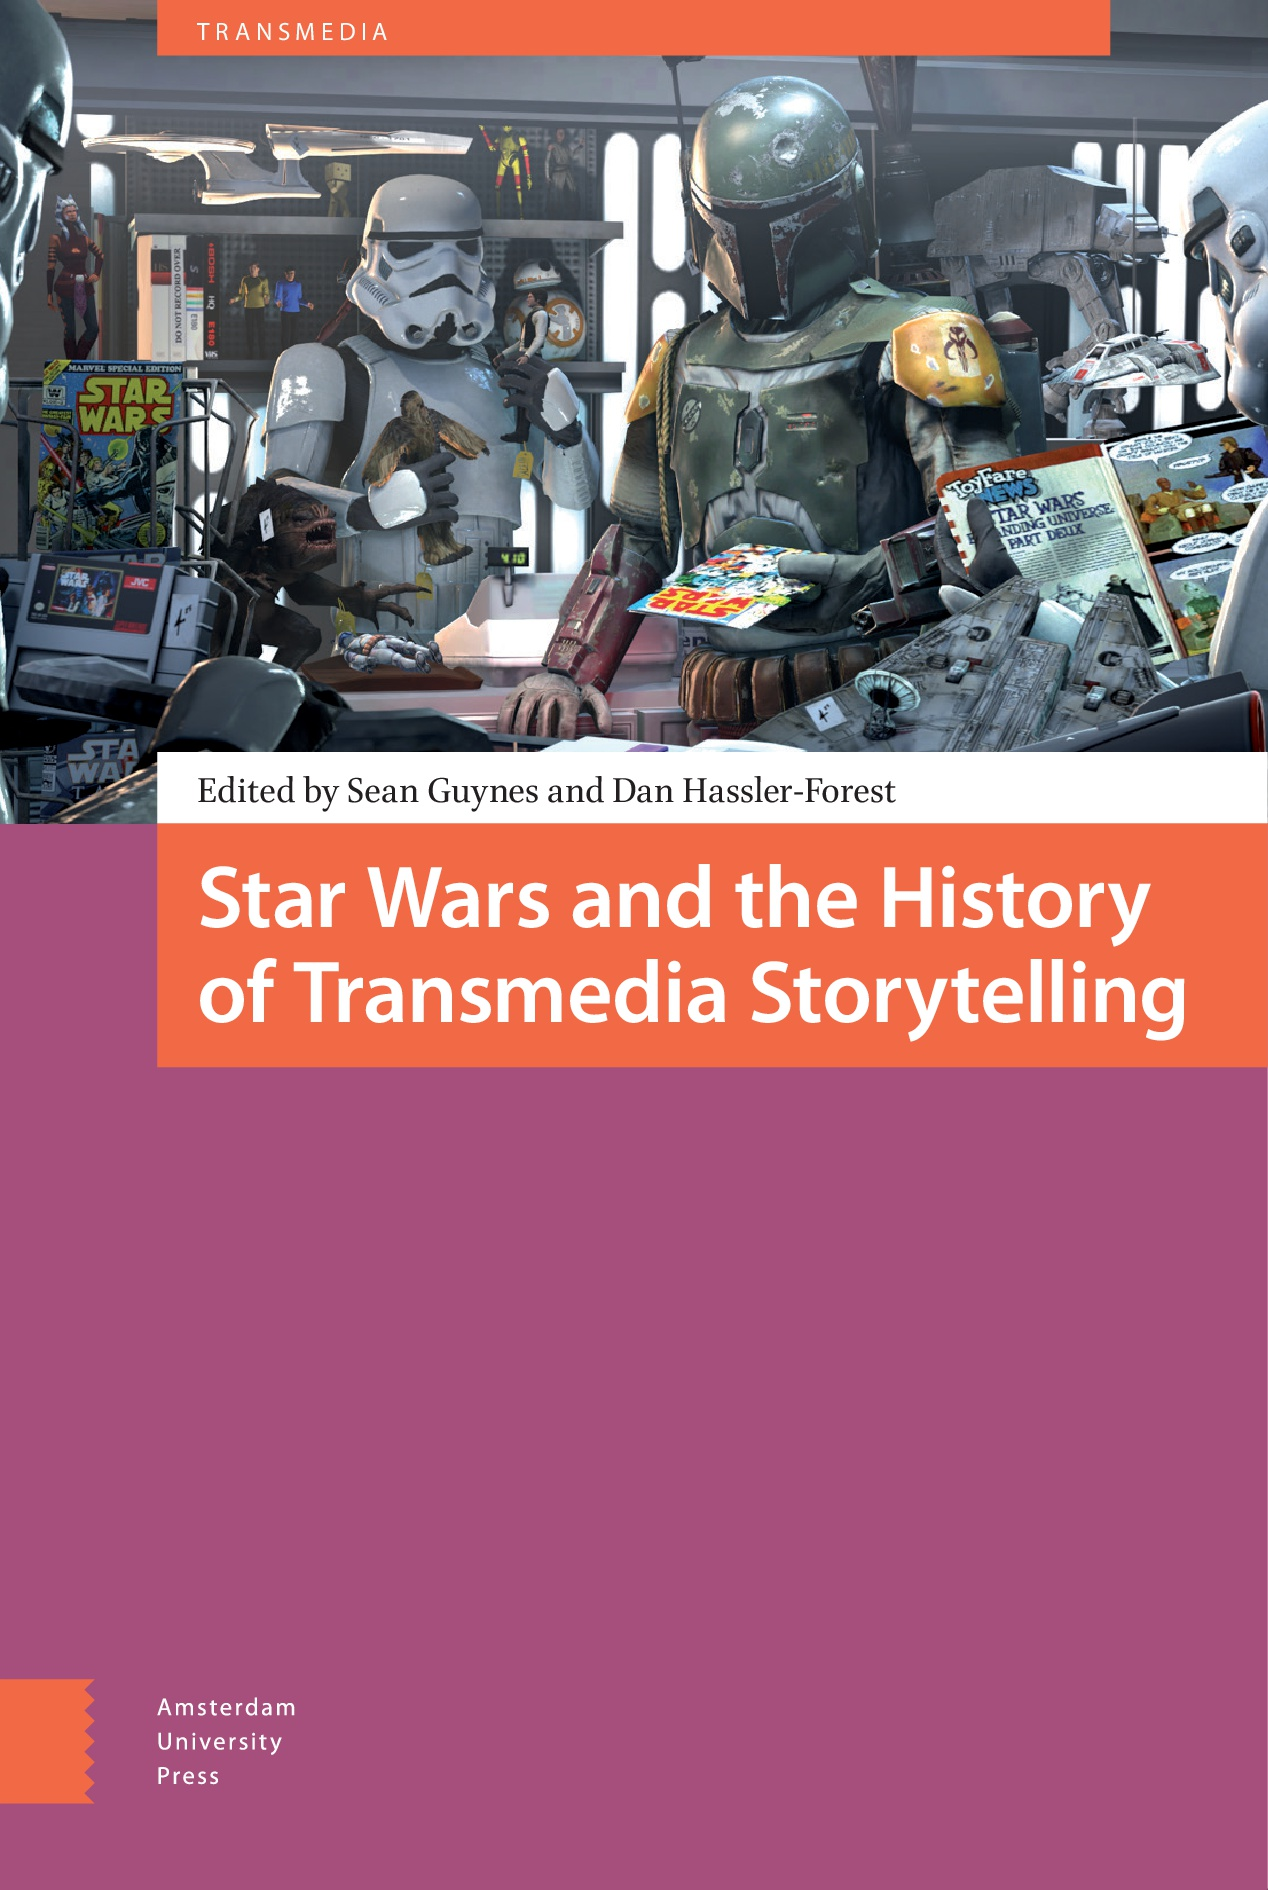 How Star Wars Became Museological - Transmedia Storytelling in the Exhibition Space